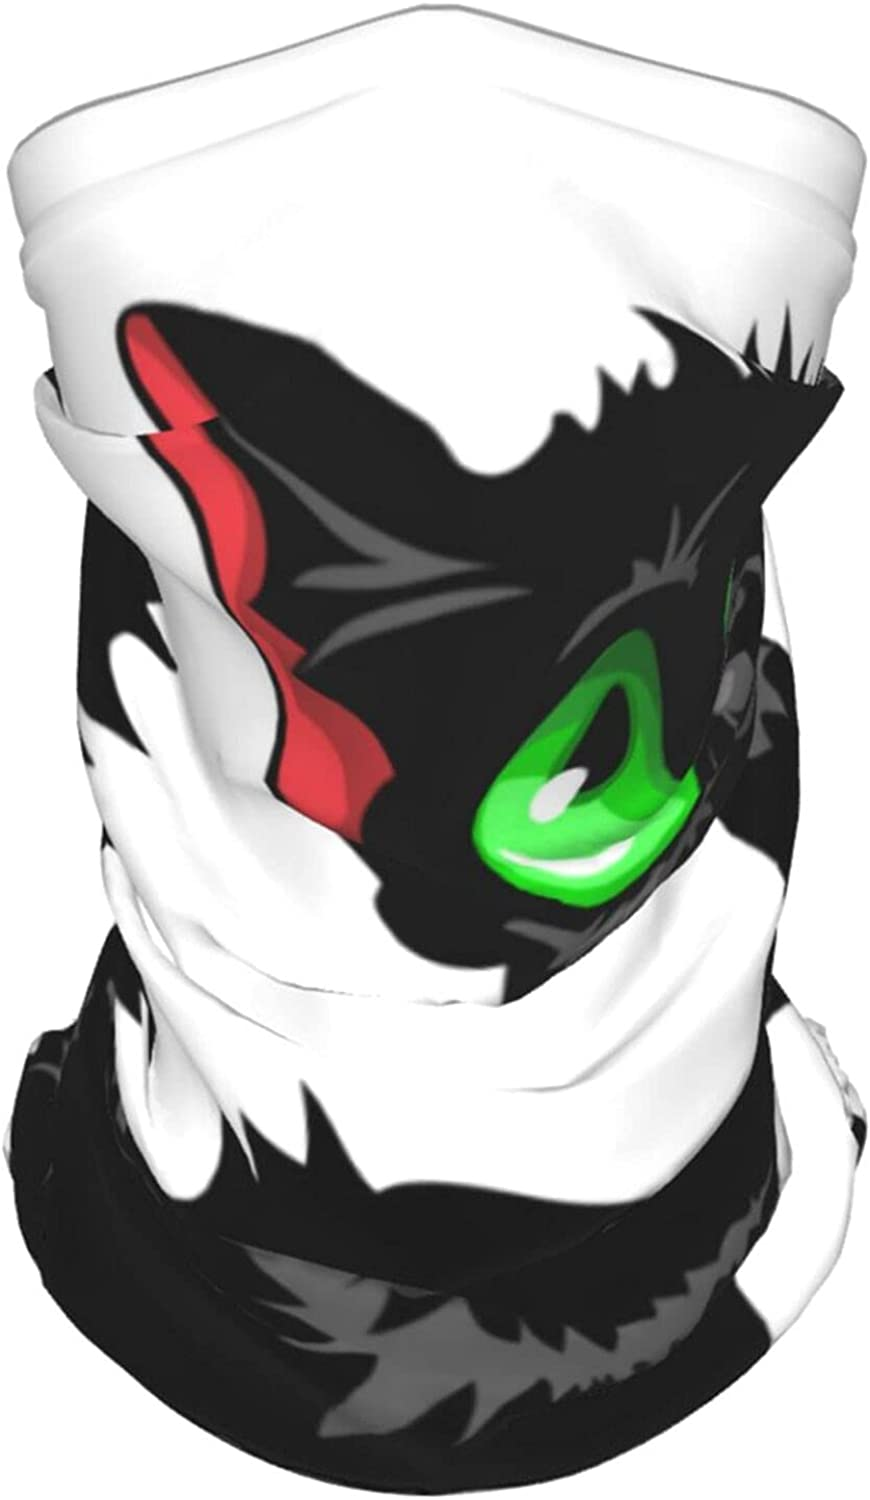 Funny Sly Black Cat with Green Eyes Summer Ice Silk Breathable Face Mask Neck Gaiter Scarf Bandanas for Fishing,Hiking,Running,Motorcycle and Daily Wear